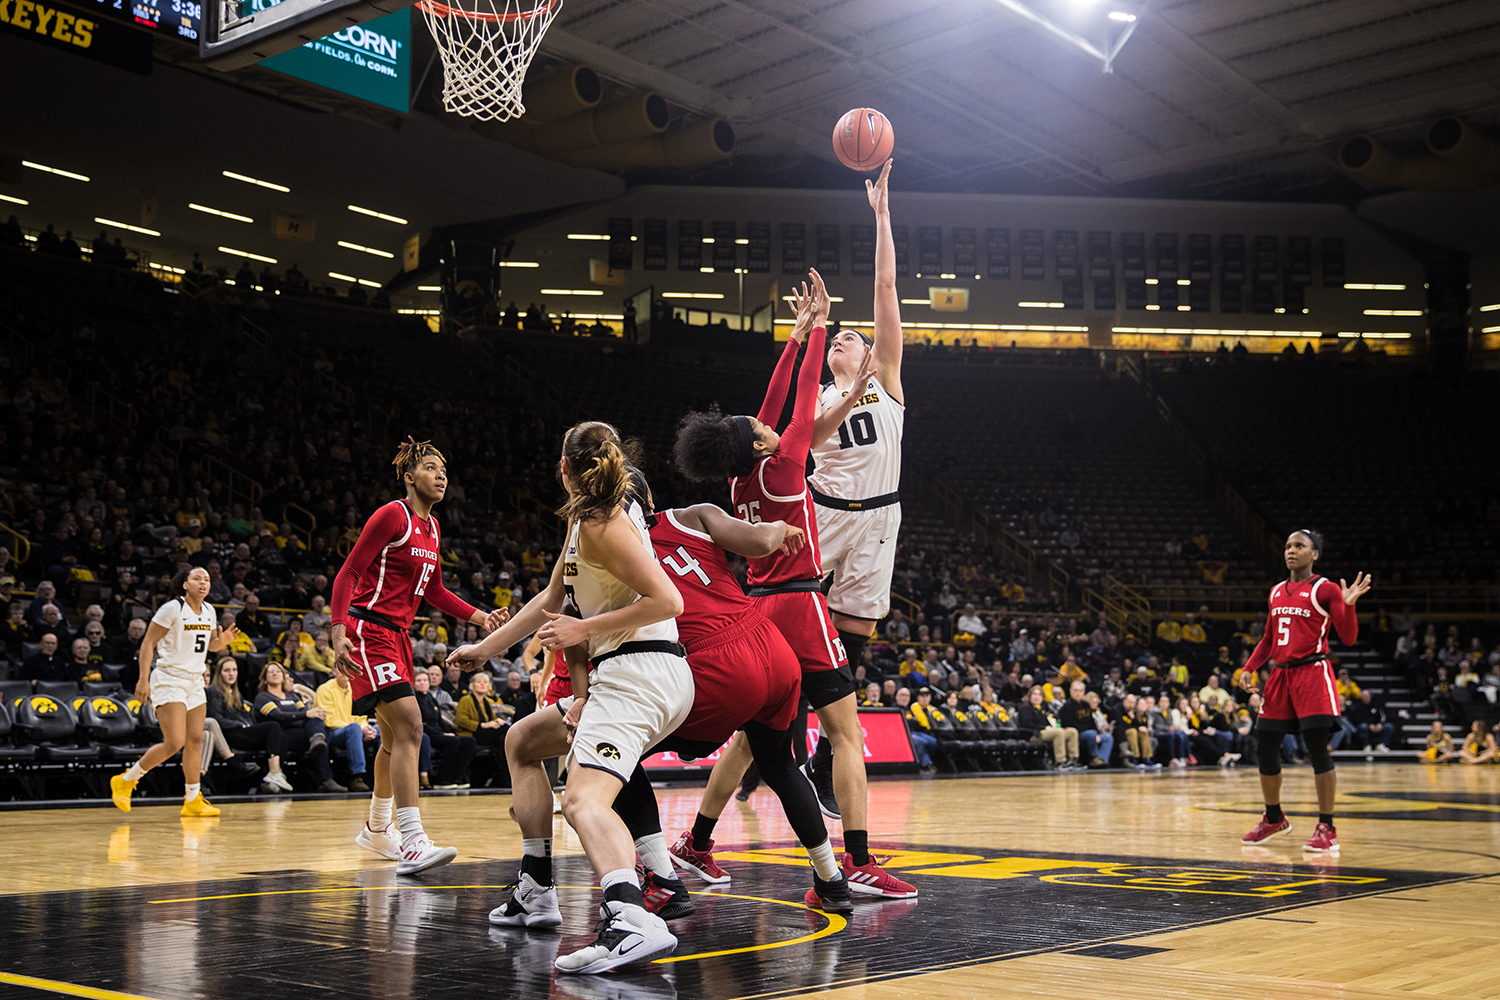 Iowa center Megan Gustafson lays the ball up during a women's basketball matchup between Iowa and Rutgers at Carver-Hawkeye Arena on Wednesday, January 23, 2019. The Hawkeyes defeated the Scarlet Knights, 72-66. (Shivansh Ahuja/The Daily Iowan)